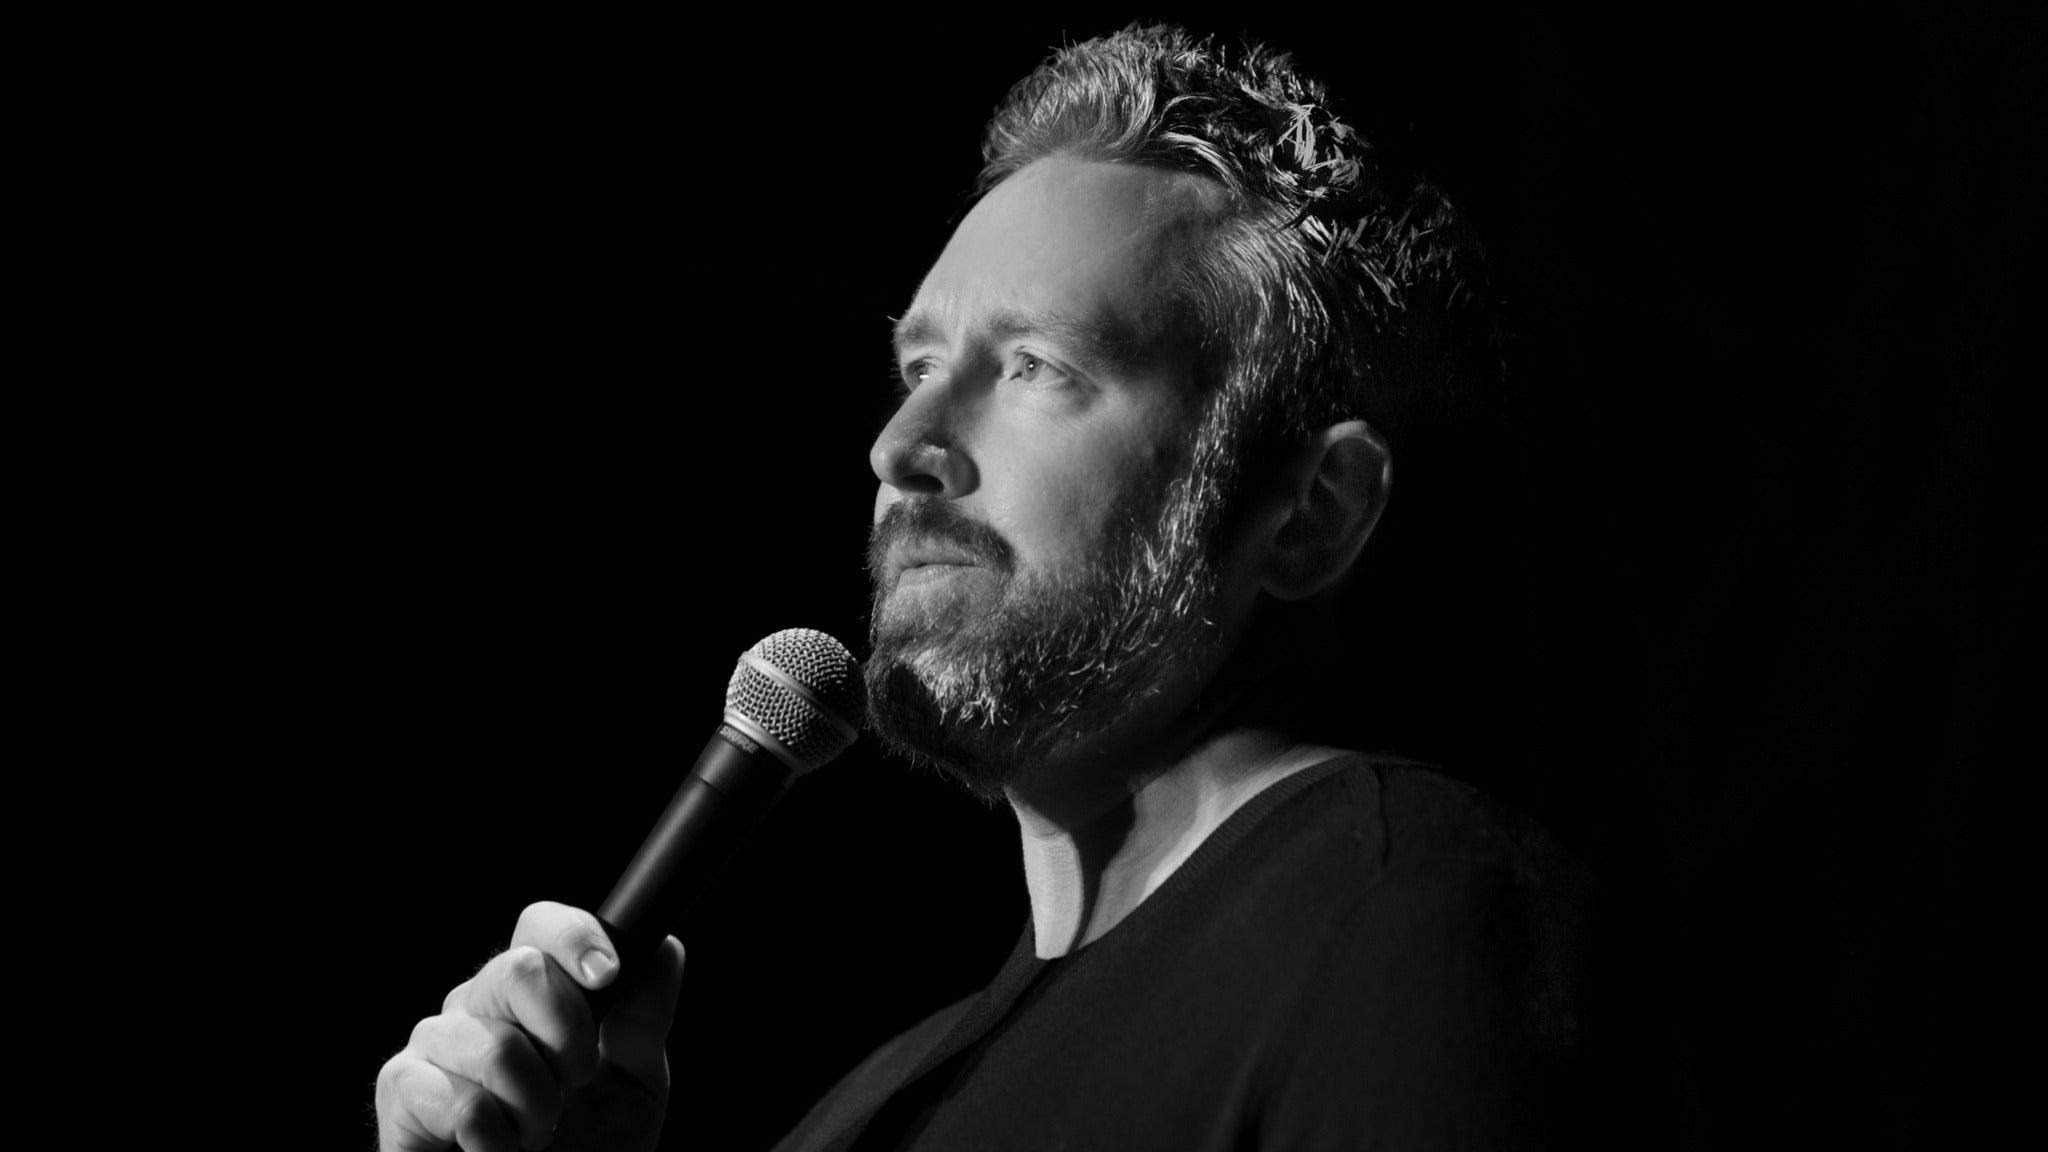 Chad Daniels at Punch Line Comedy Club - San Francisco - San Francisco, CA 94111